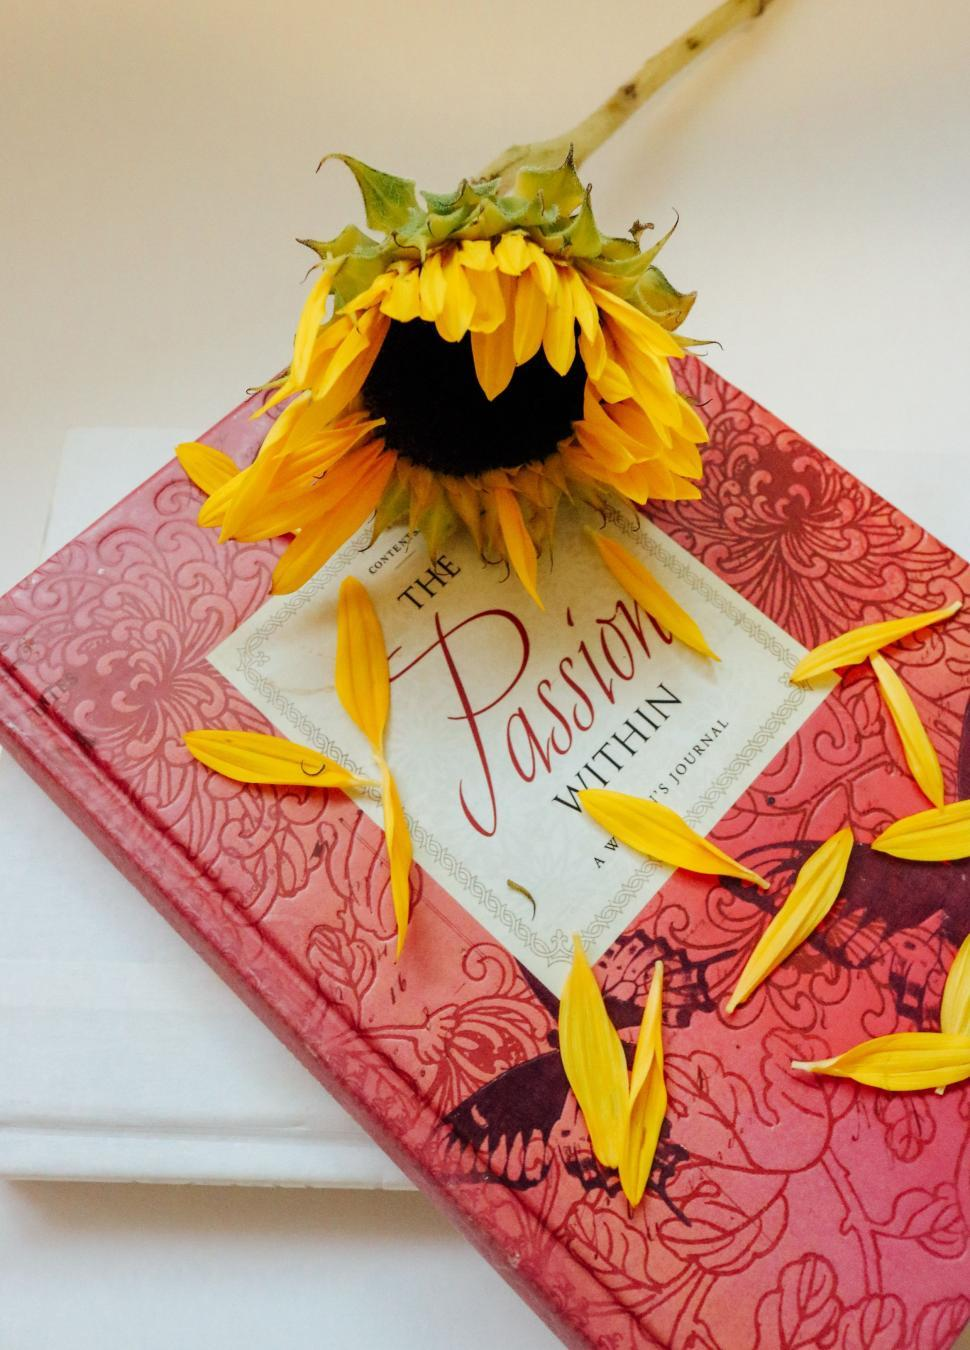 Download Free Stock Photo of Closed book with yellow flower petals